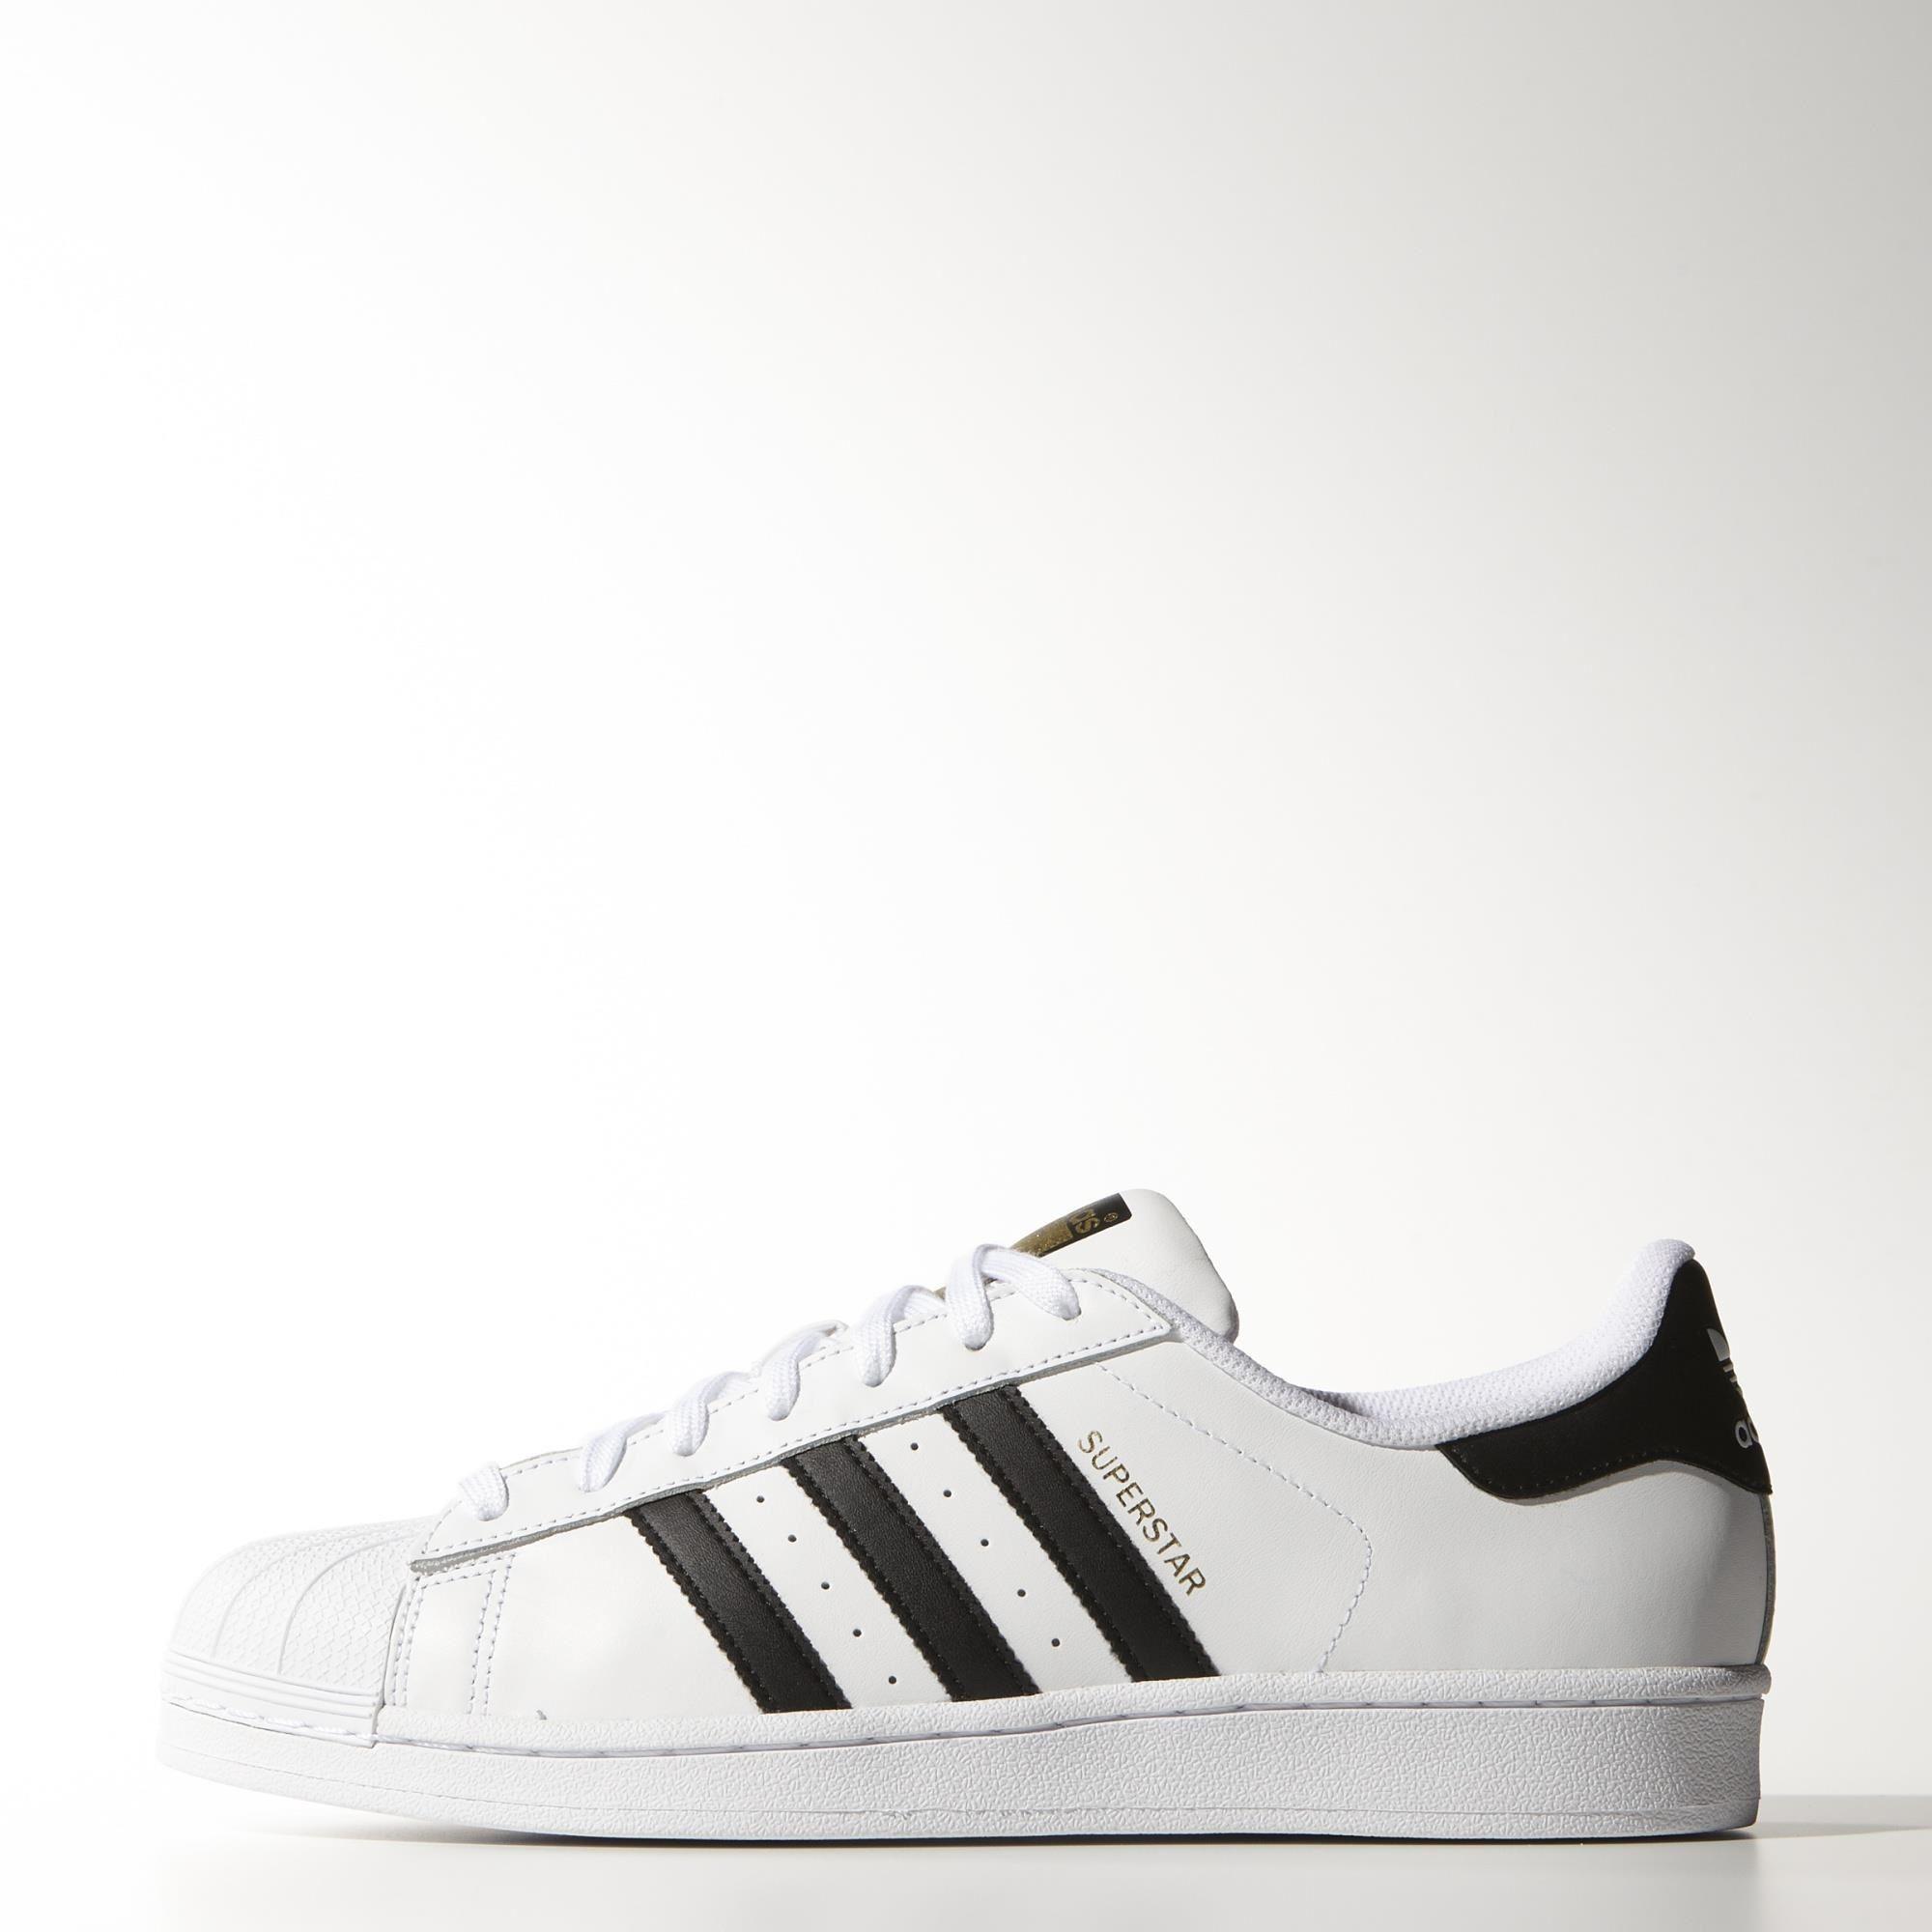 online retailer 1d4a6 74e89 A modern manifestation of the original. The adidas Superstar was born in  the 70s as a court-dominating b-ball shoe, but it was soon infiltrating ...